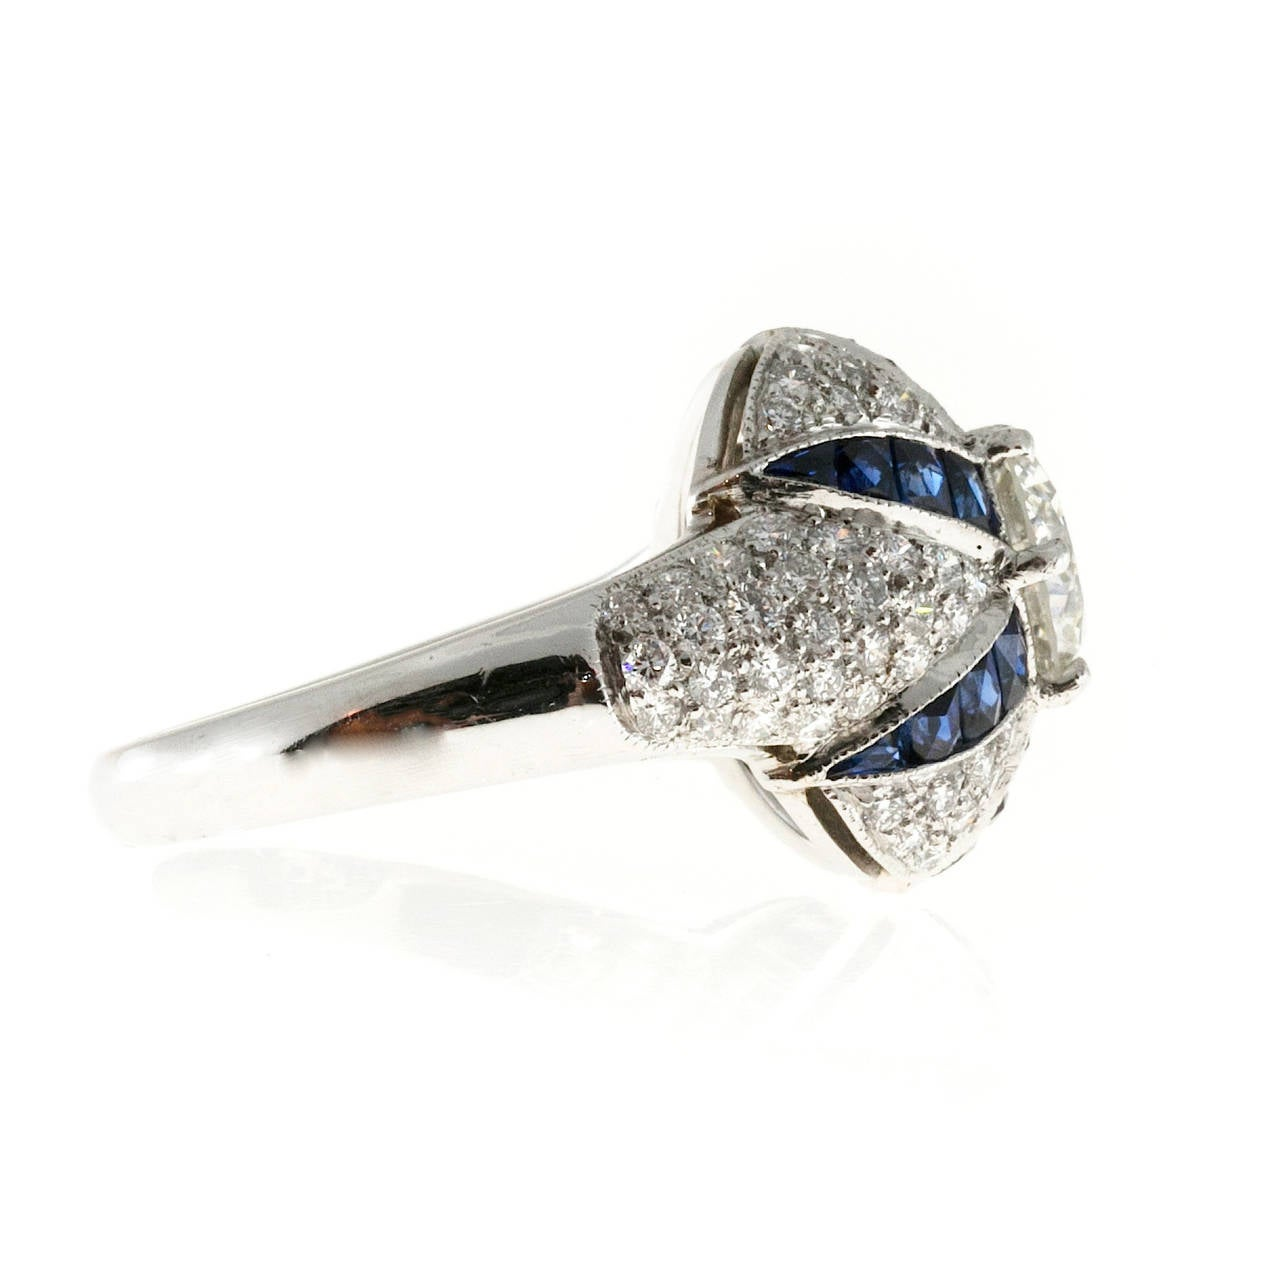 Calibre Sapphire Diamond Platinum Domed Ring In Good Condition For Sale In Stamford, CT